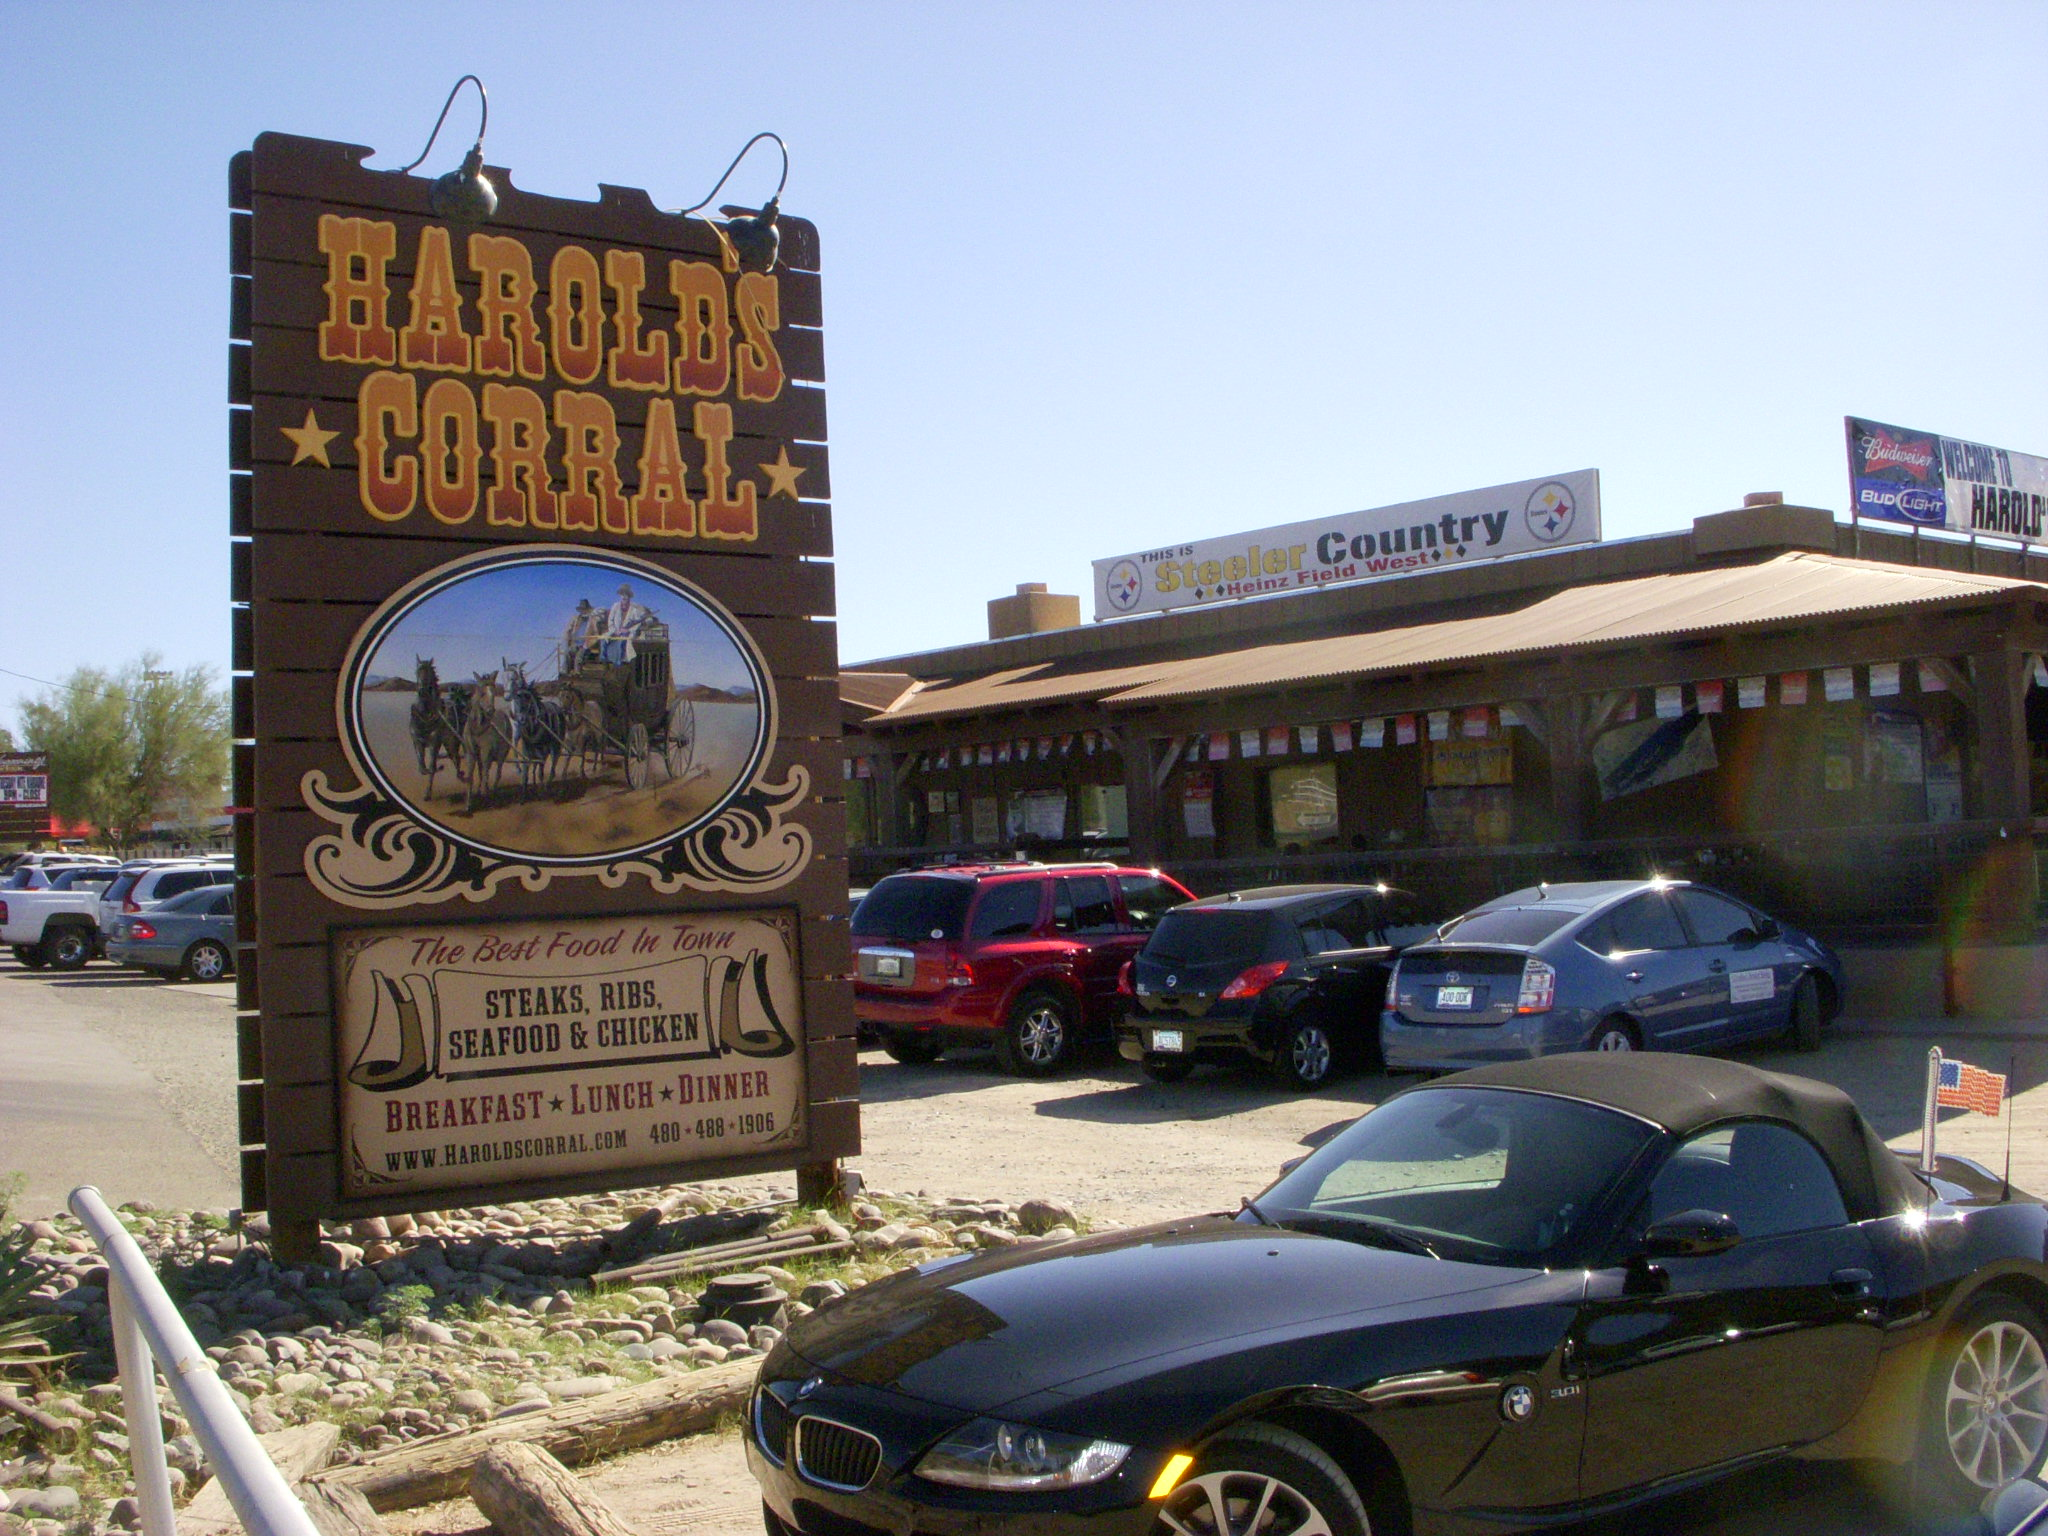 A view of Harolds Corral from the parking lot with a sign displayed on the building saying